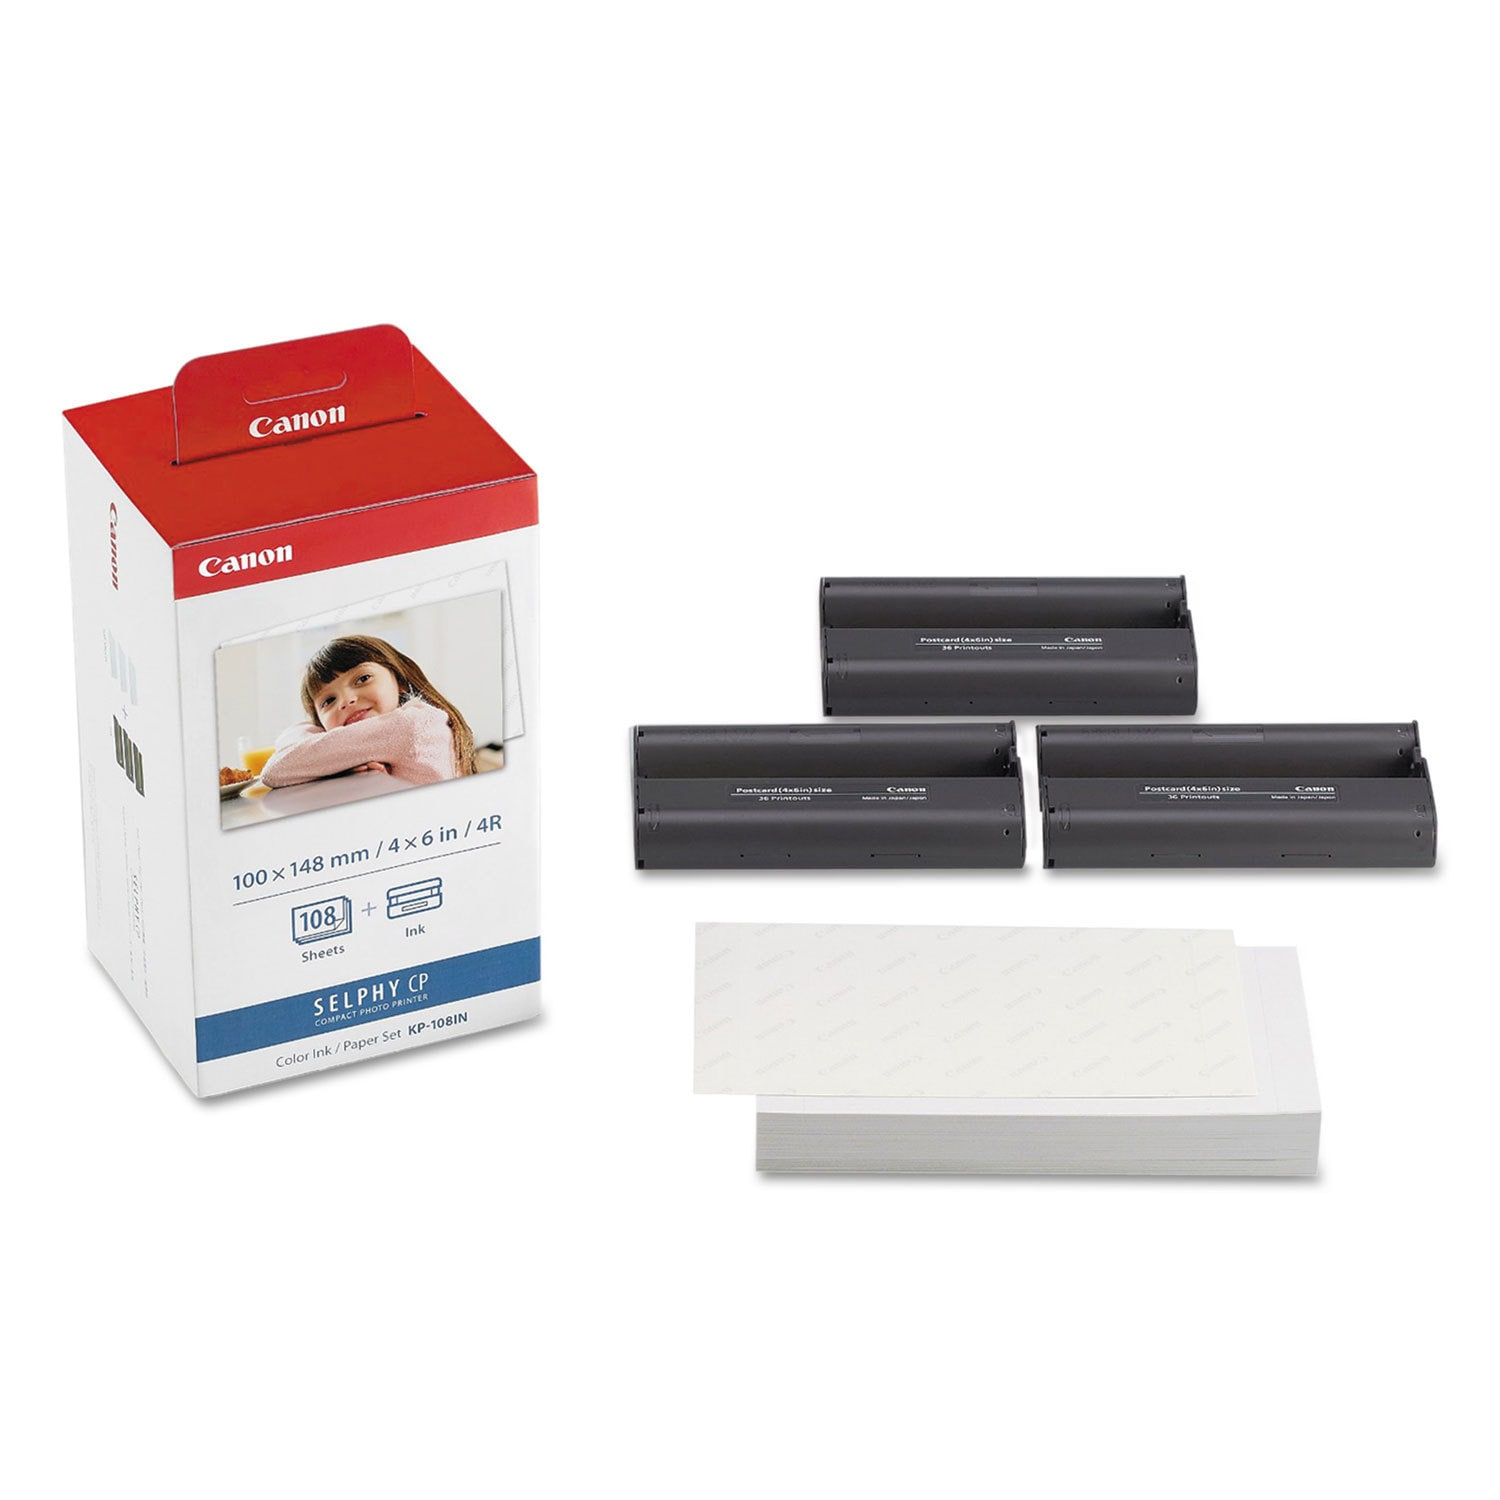 Canon 3115B001 (KP-108IN) Color Ink and Paper Set Clear/C...